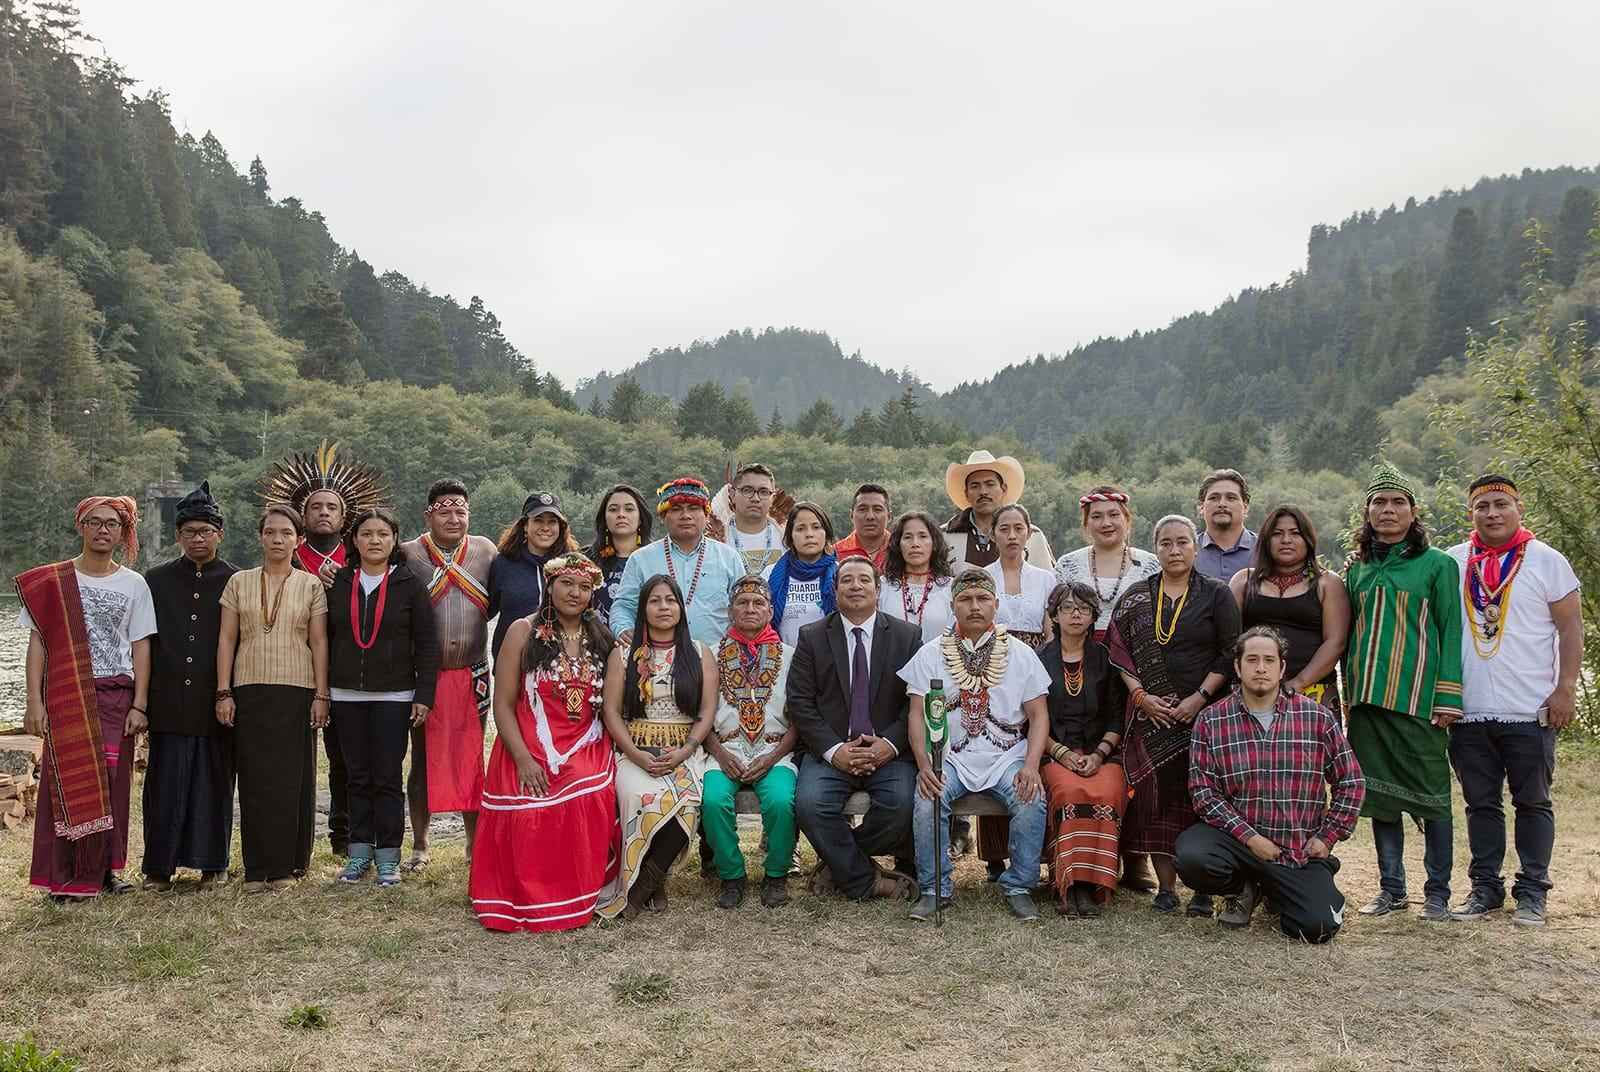 Group shot of indigenous peoples